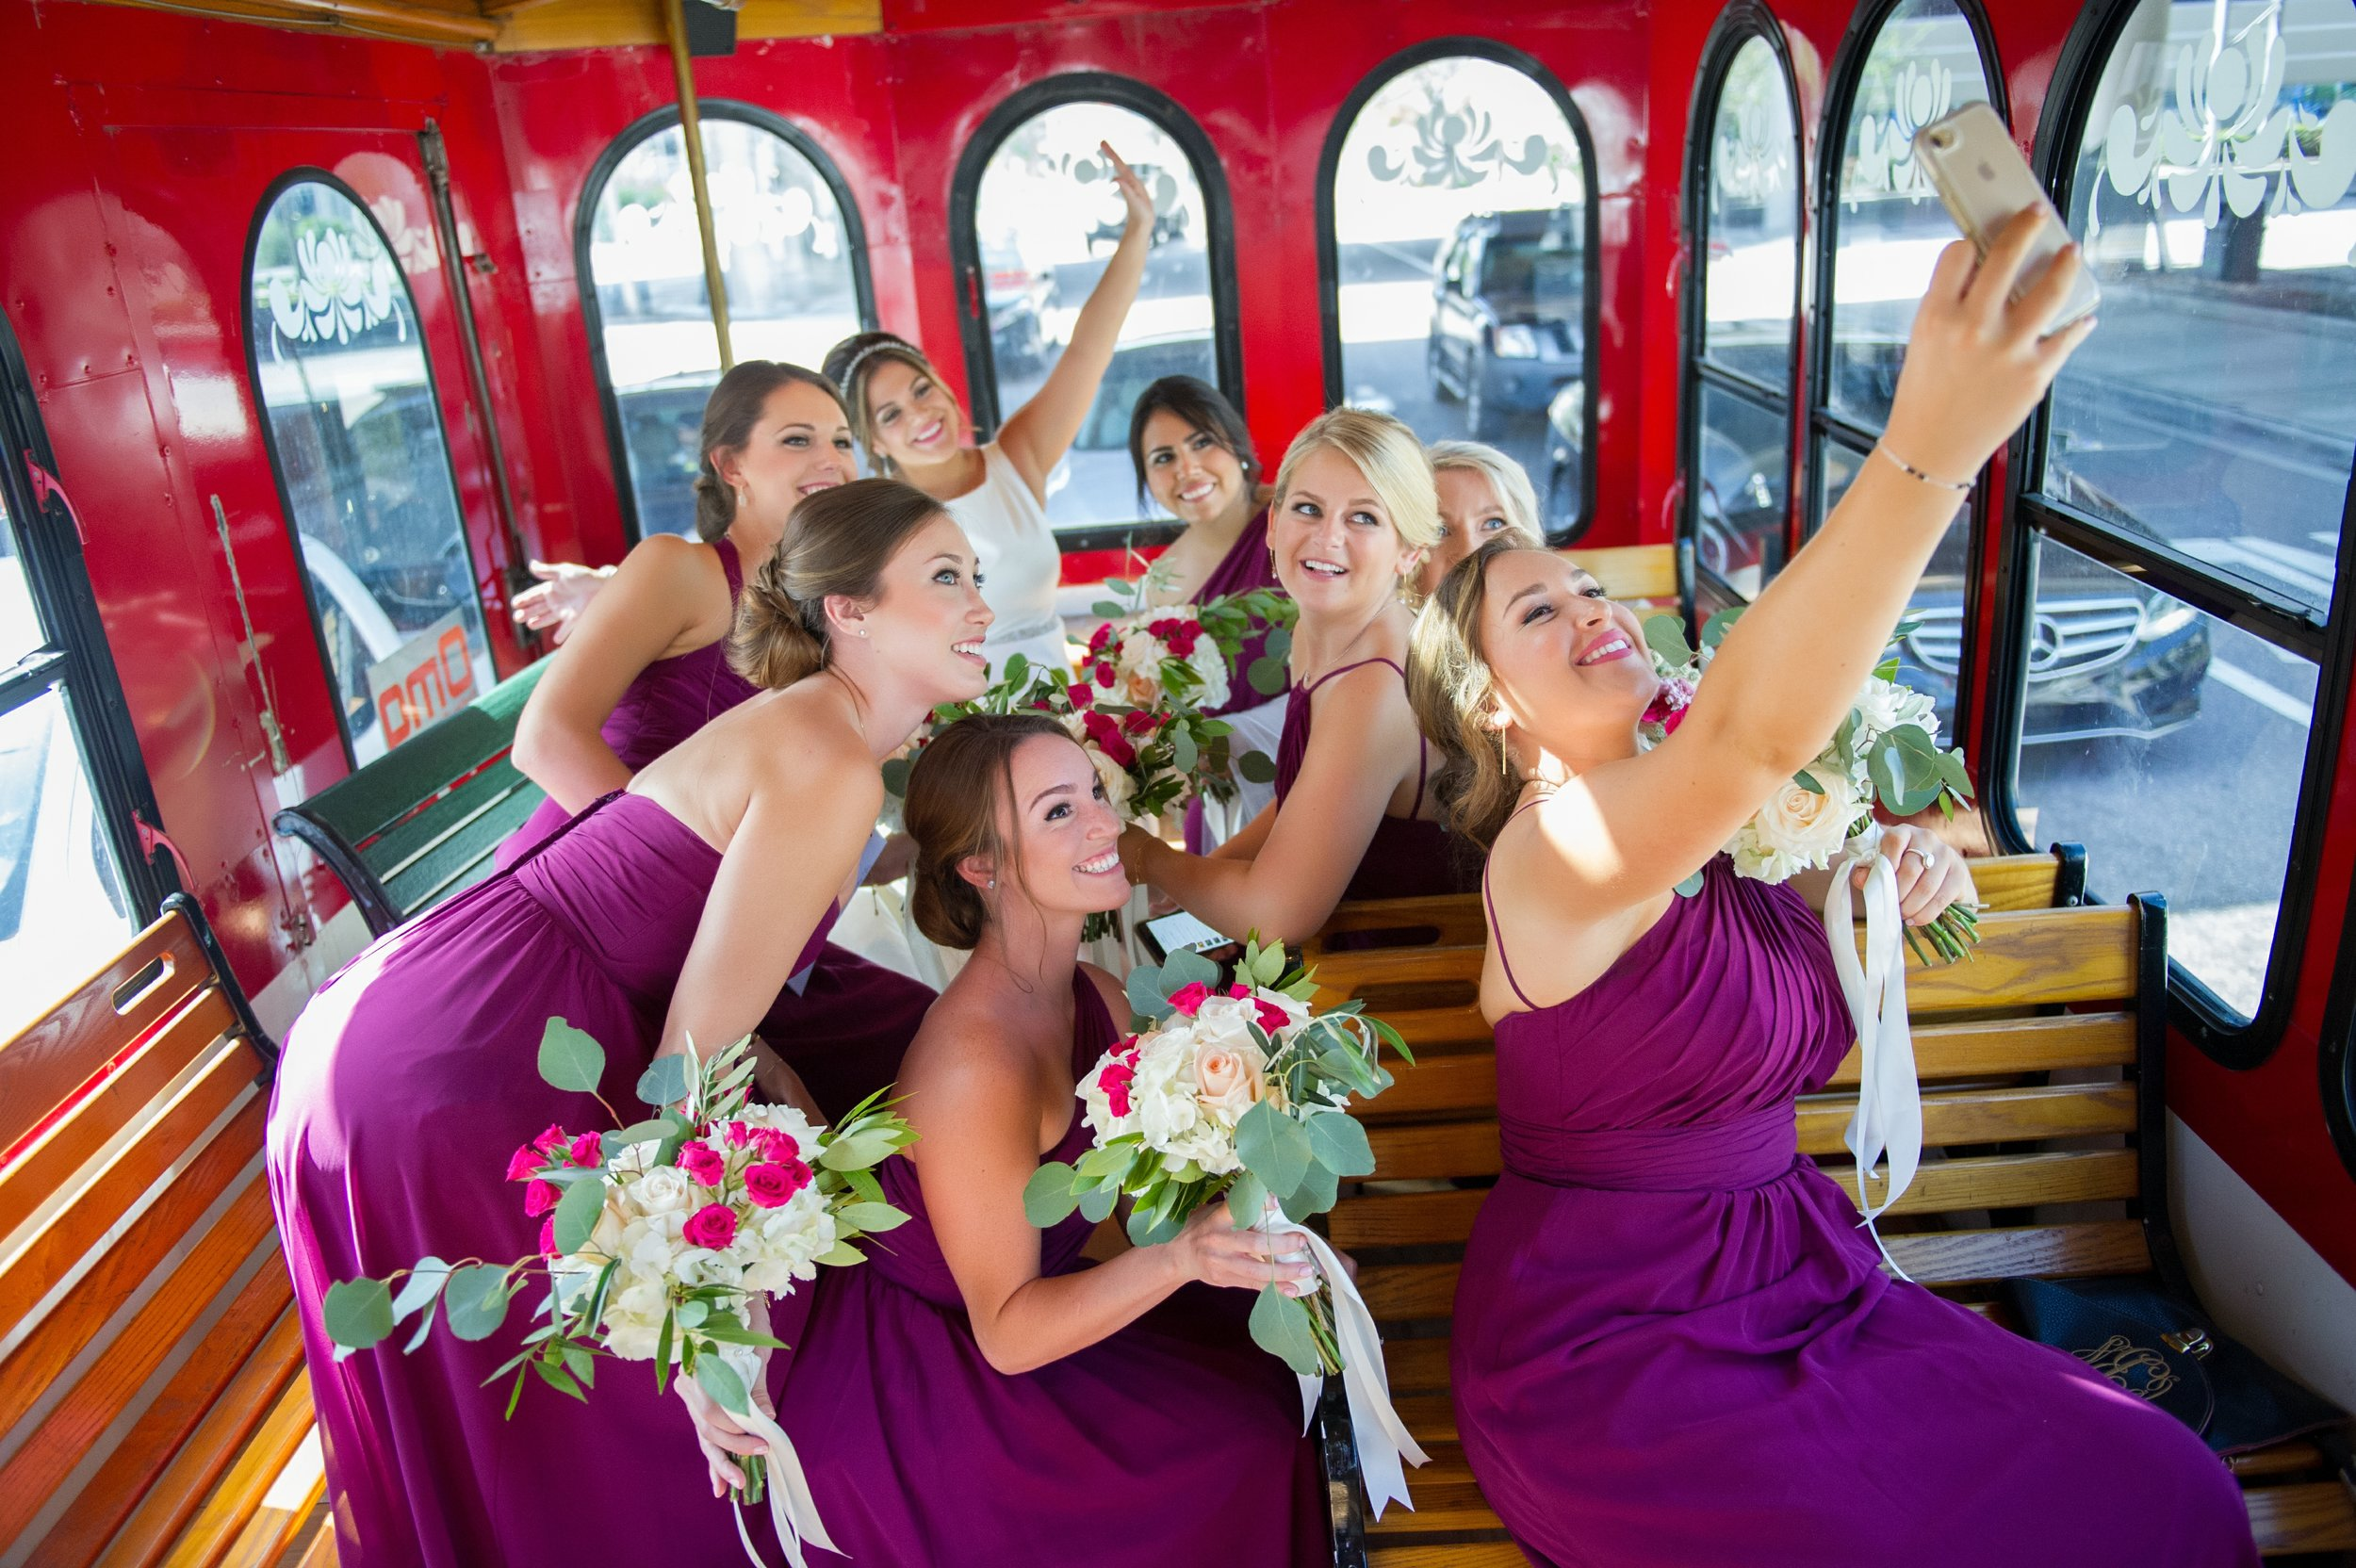 The bride and her bridesmaids made sure to fit in the important things during the special day, like selfies with all your favorite girls!